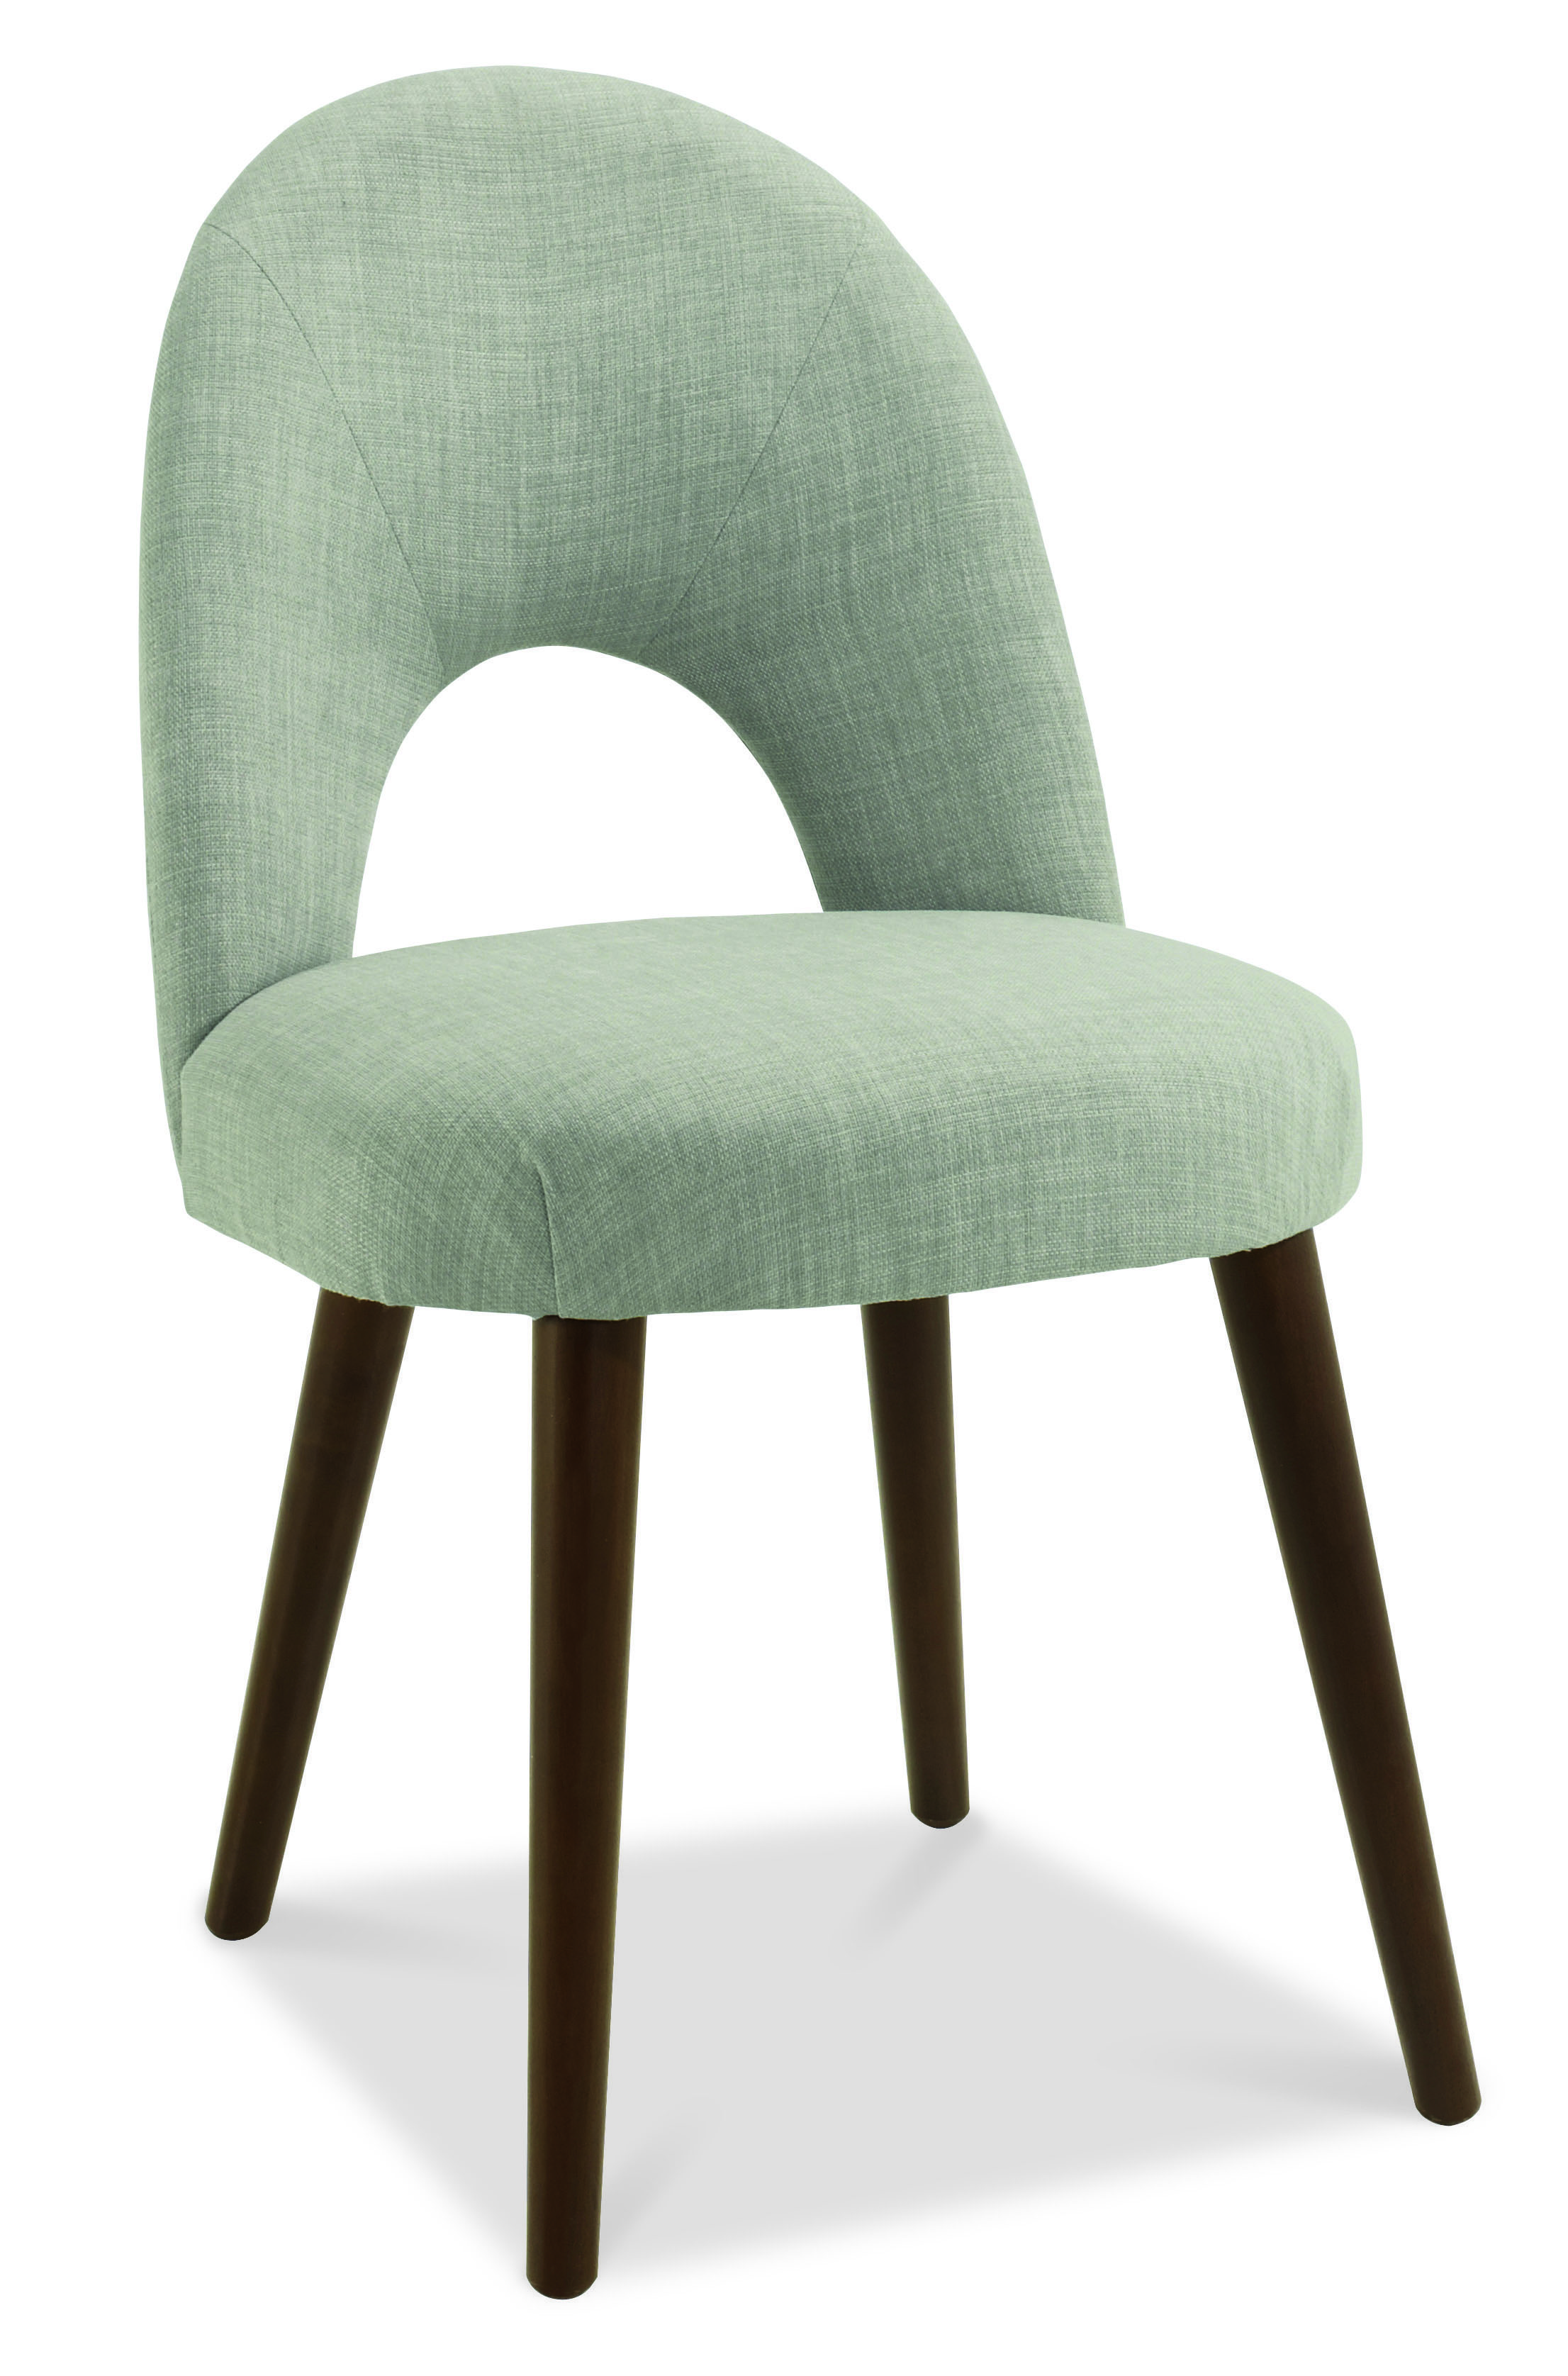 Oslo Walnut Linen Fabric Upholstered Dining Chairs - Upholstered dining chairs uk